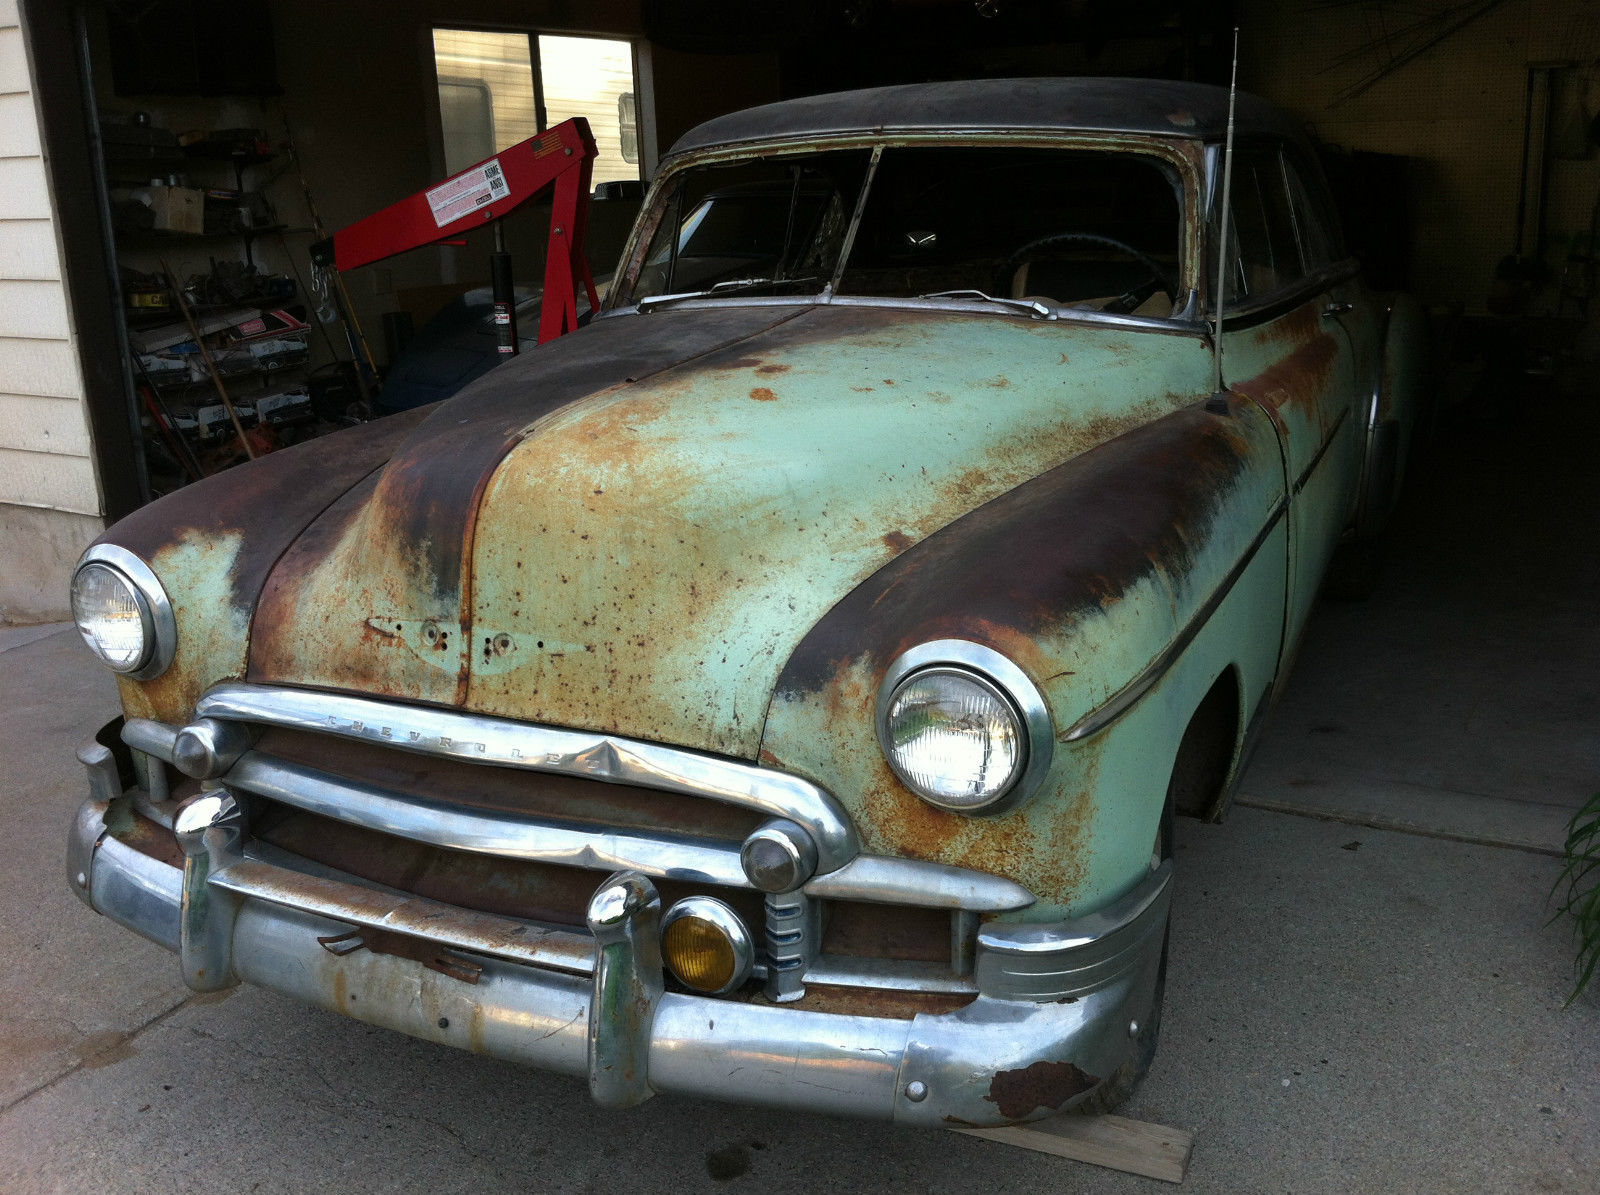 bel air chevy lead sled 1950 1949 hot rod unrestored